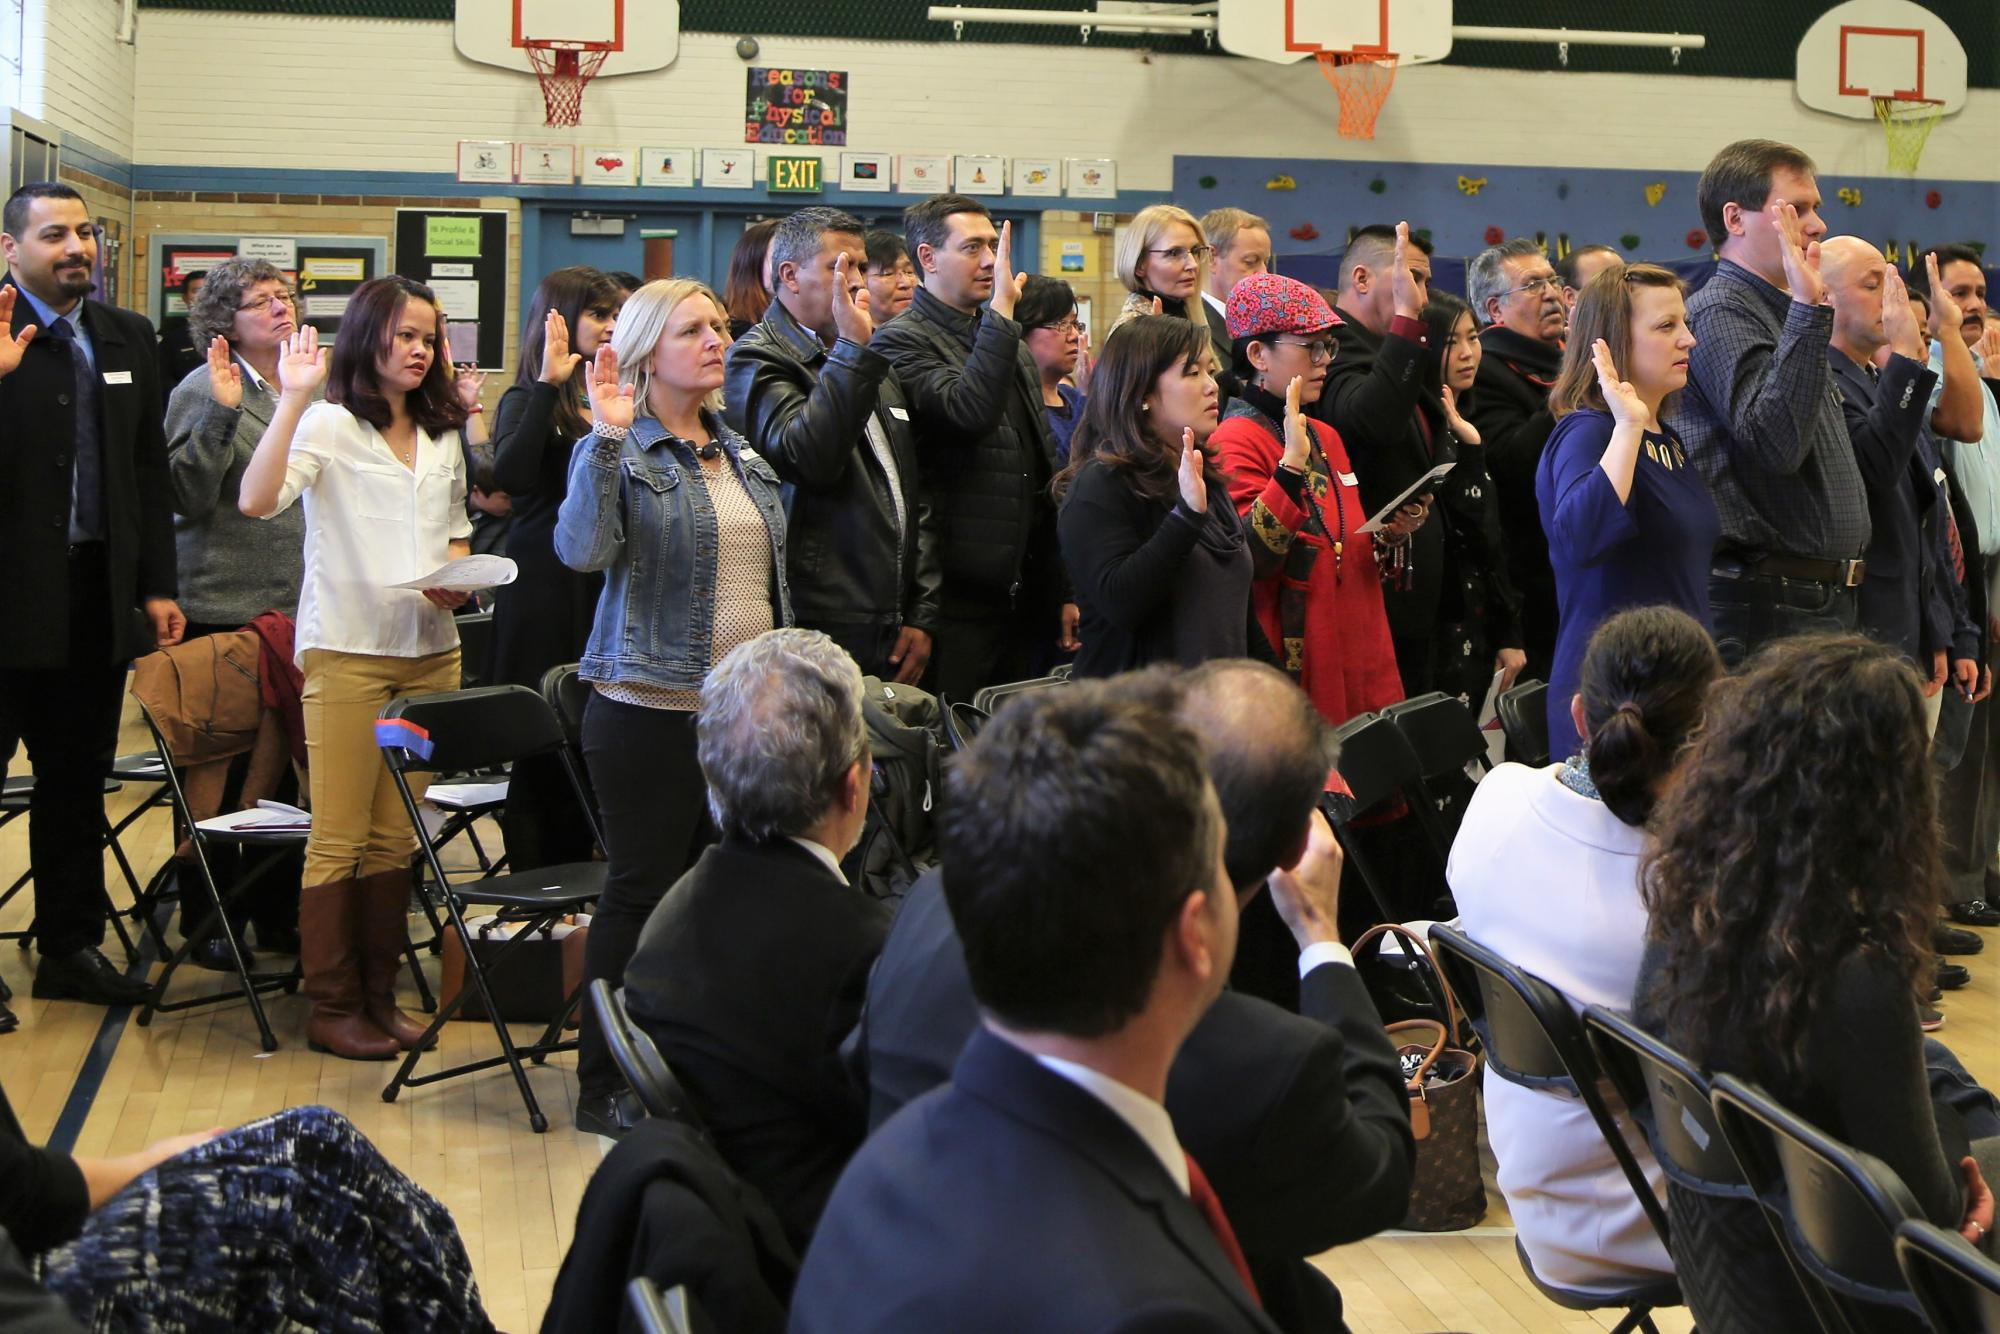 A group of people at Dunn Elementary taking the Oath to become new citizens.